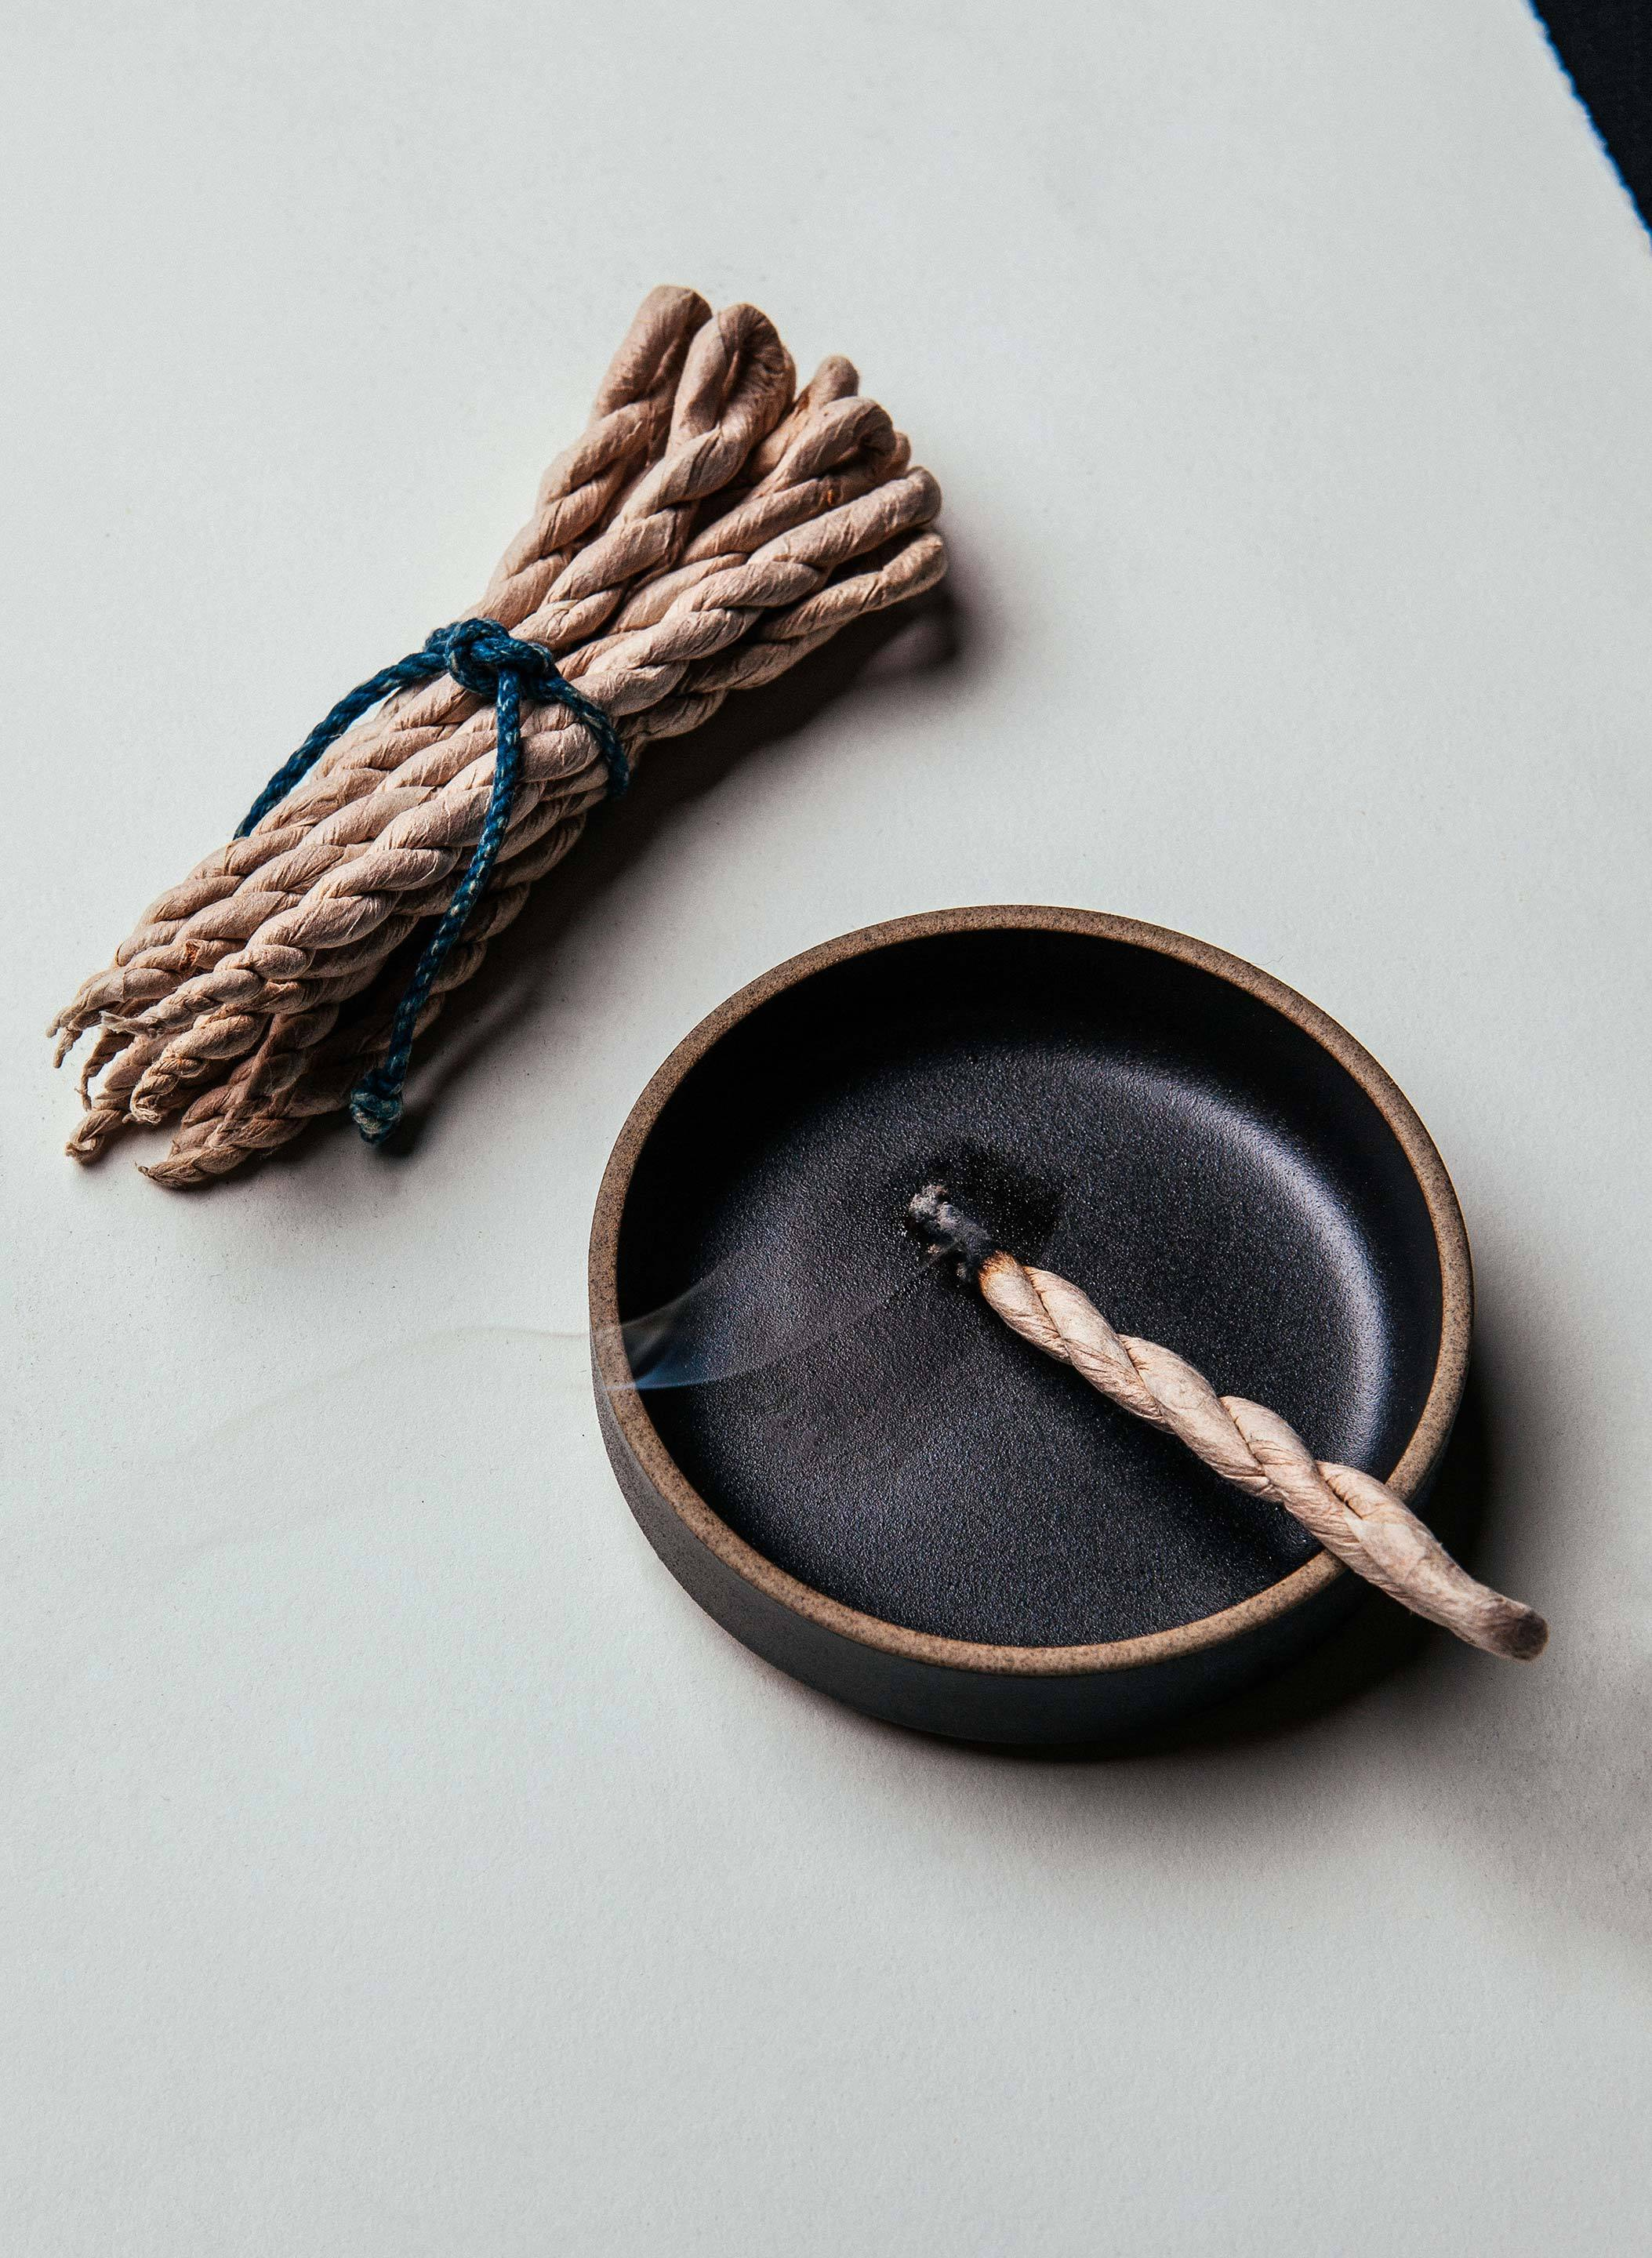 imogene + willie - tibetian cedar incense rope